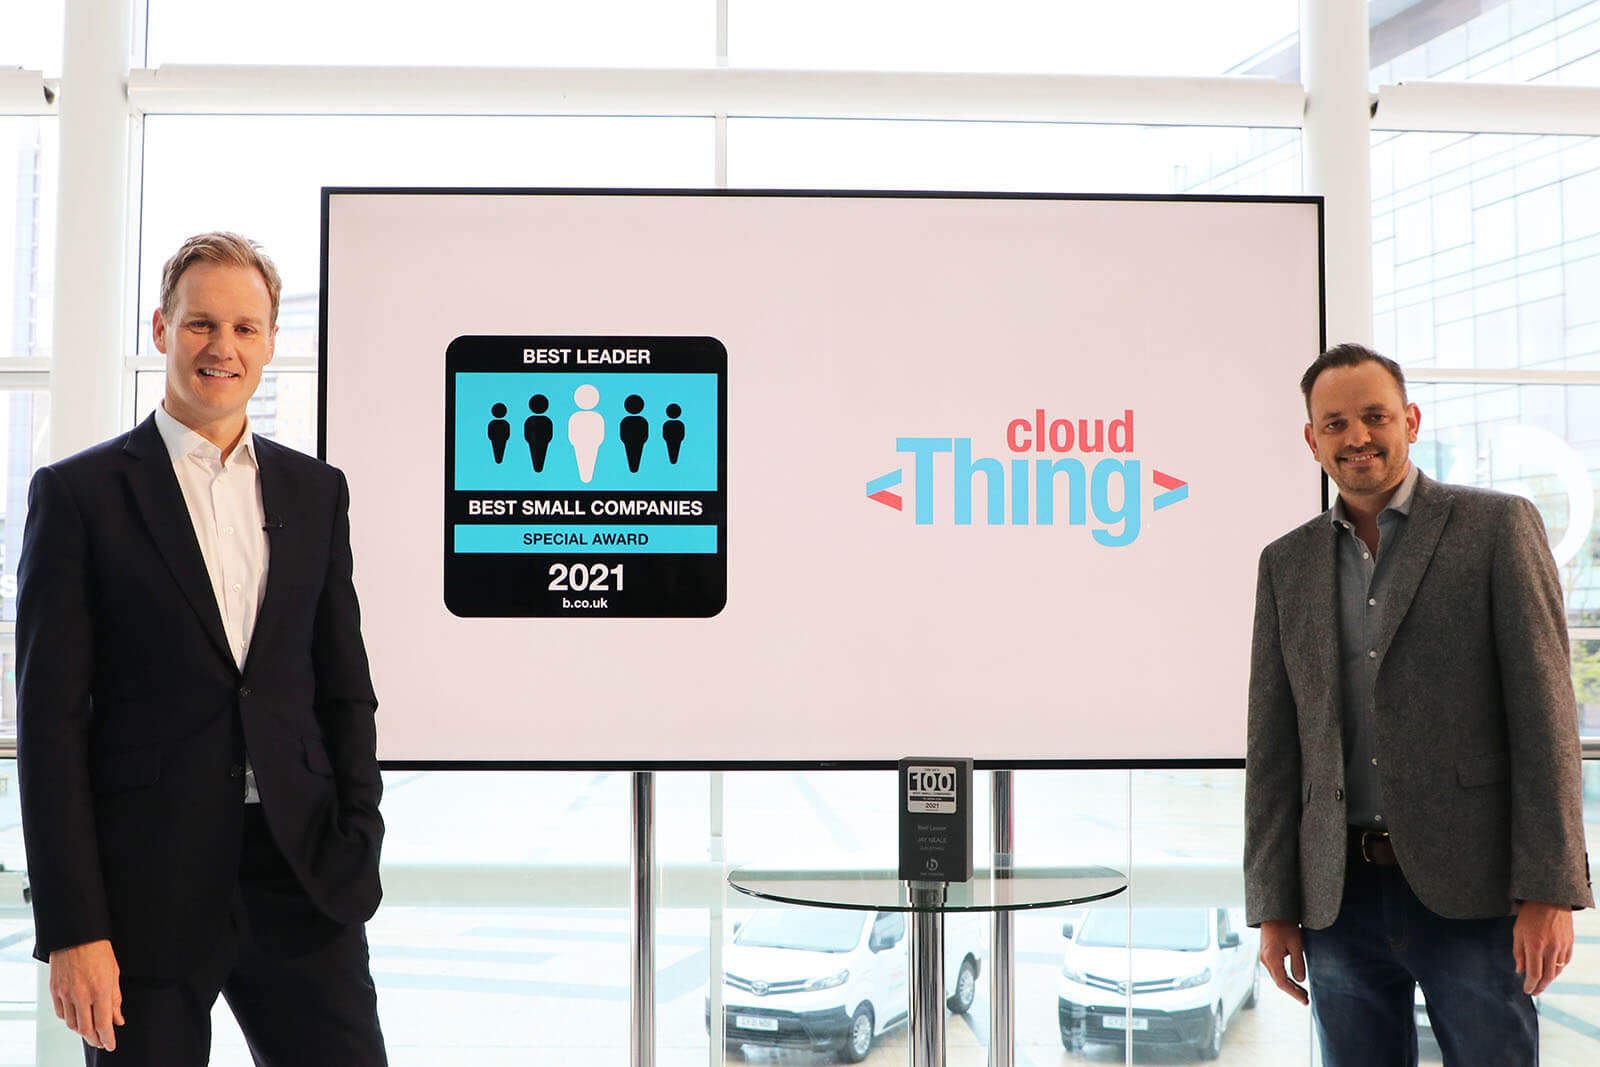 CEO of Cloud Thing Jay Neale with TVPresenter Dan Walker and the Award for the Best Leader Special Award at Best Companies Live